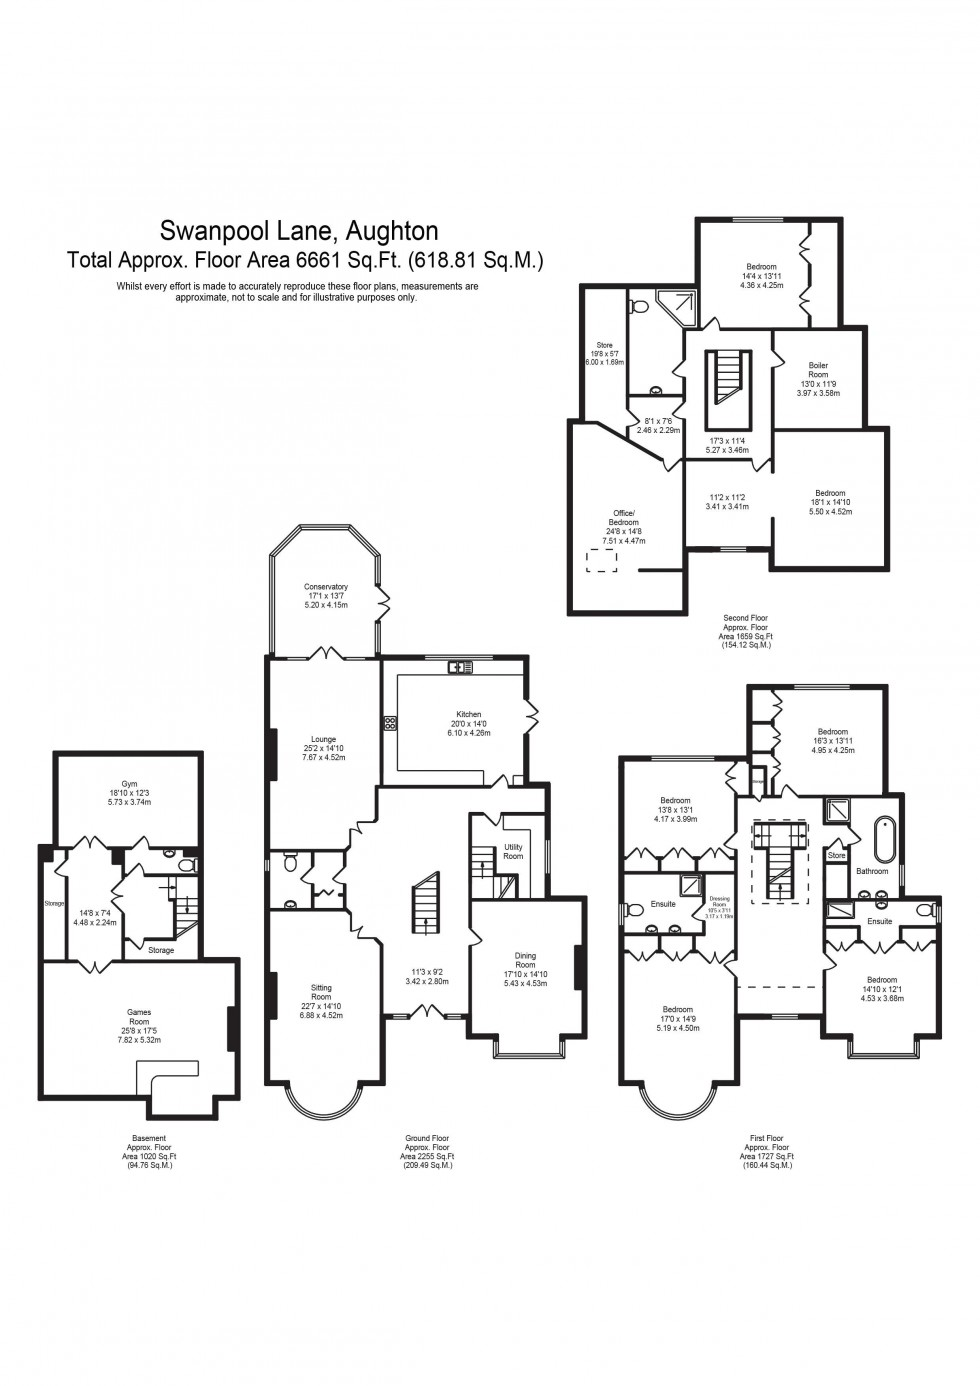 Floorplan for Swanpool Lane, Aughton